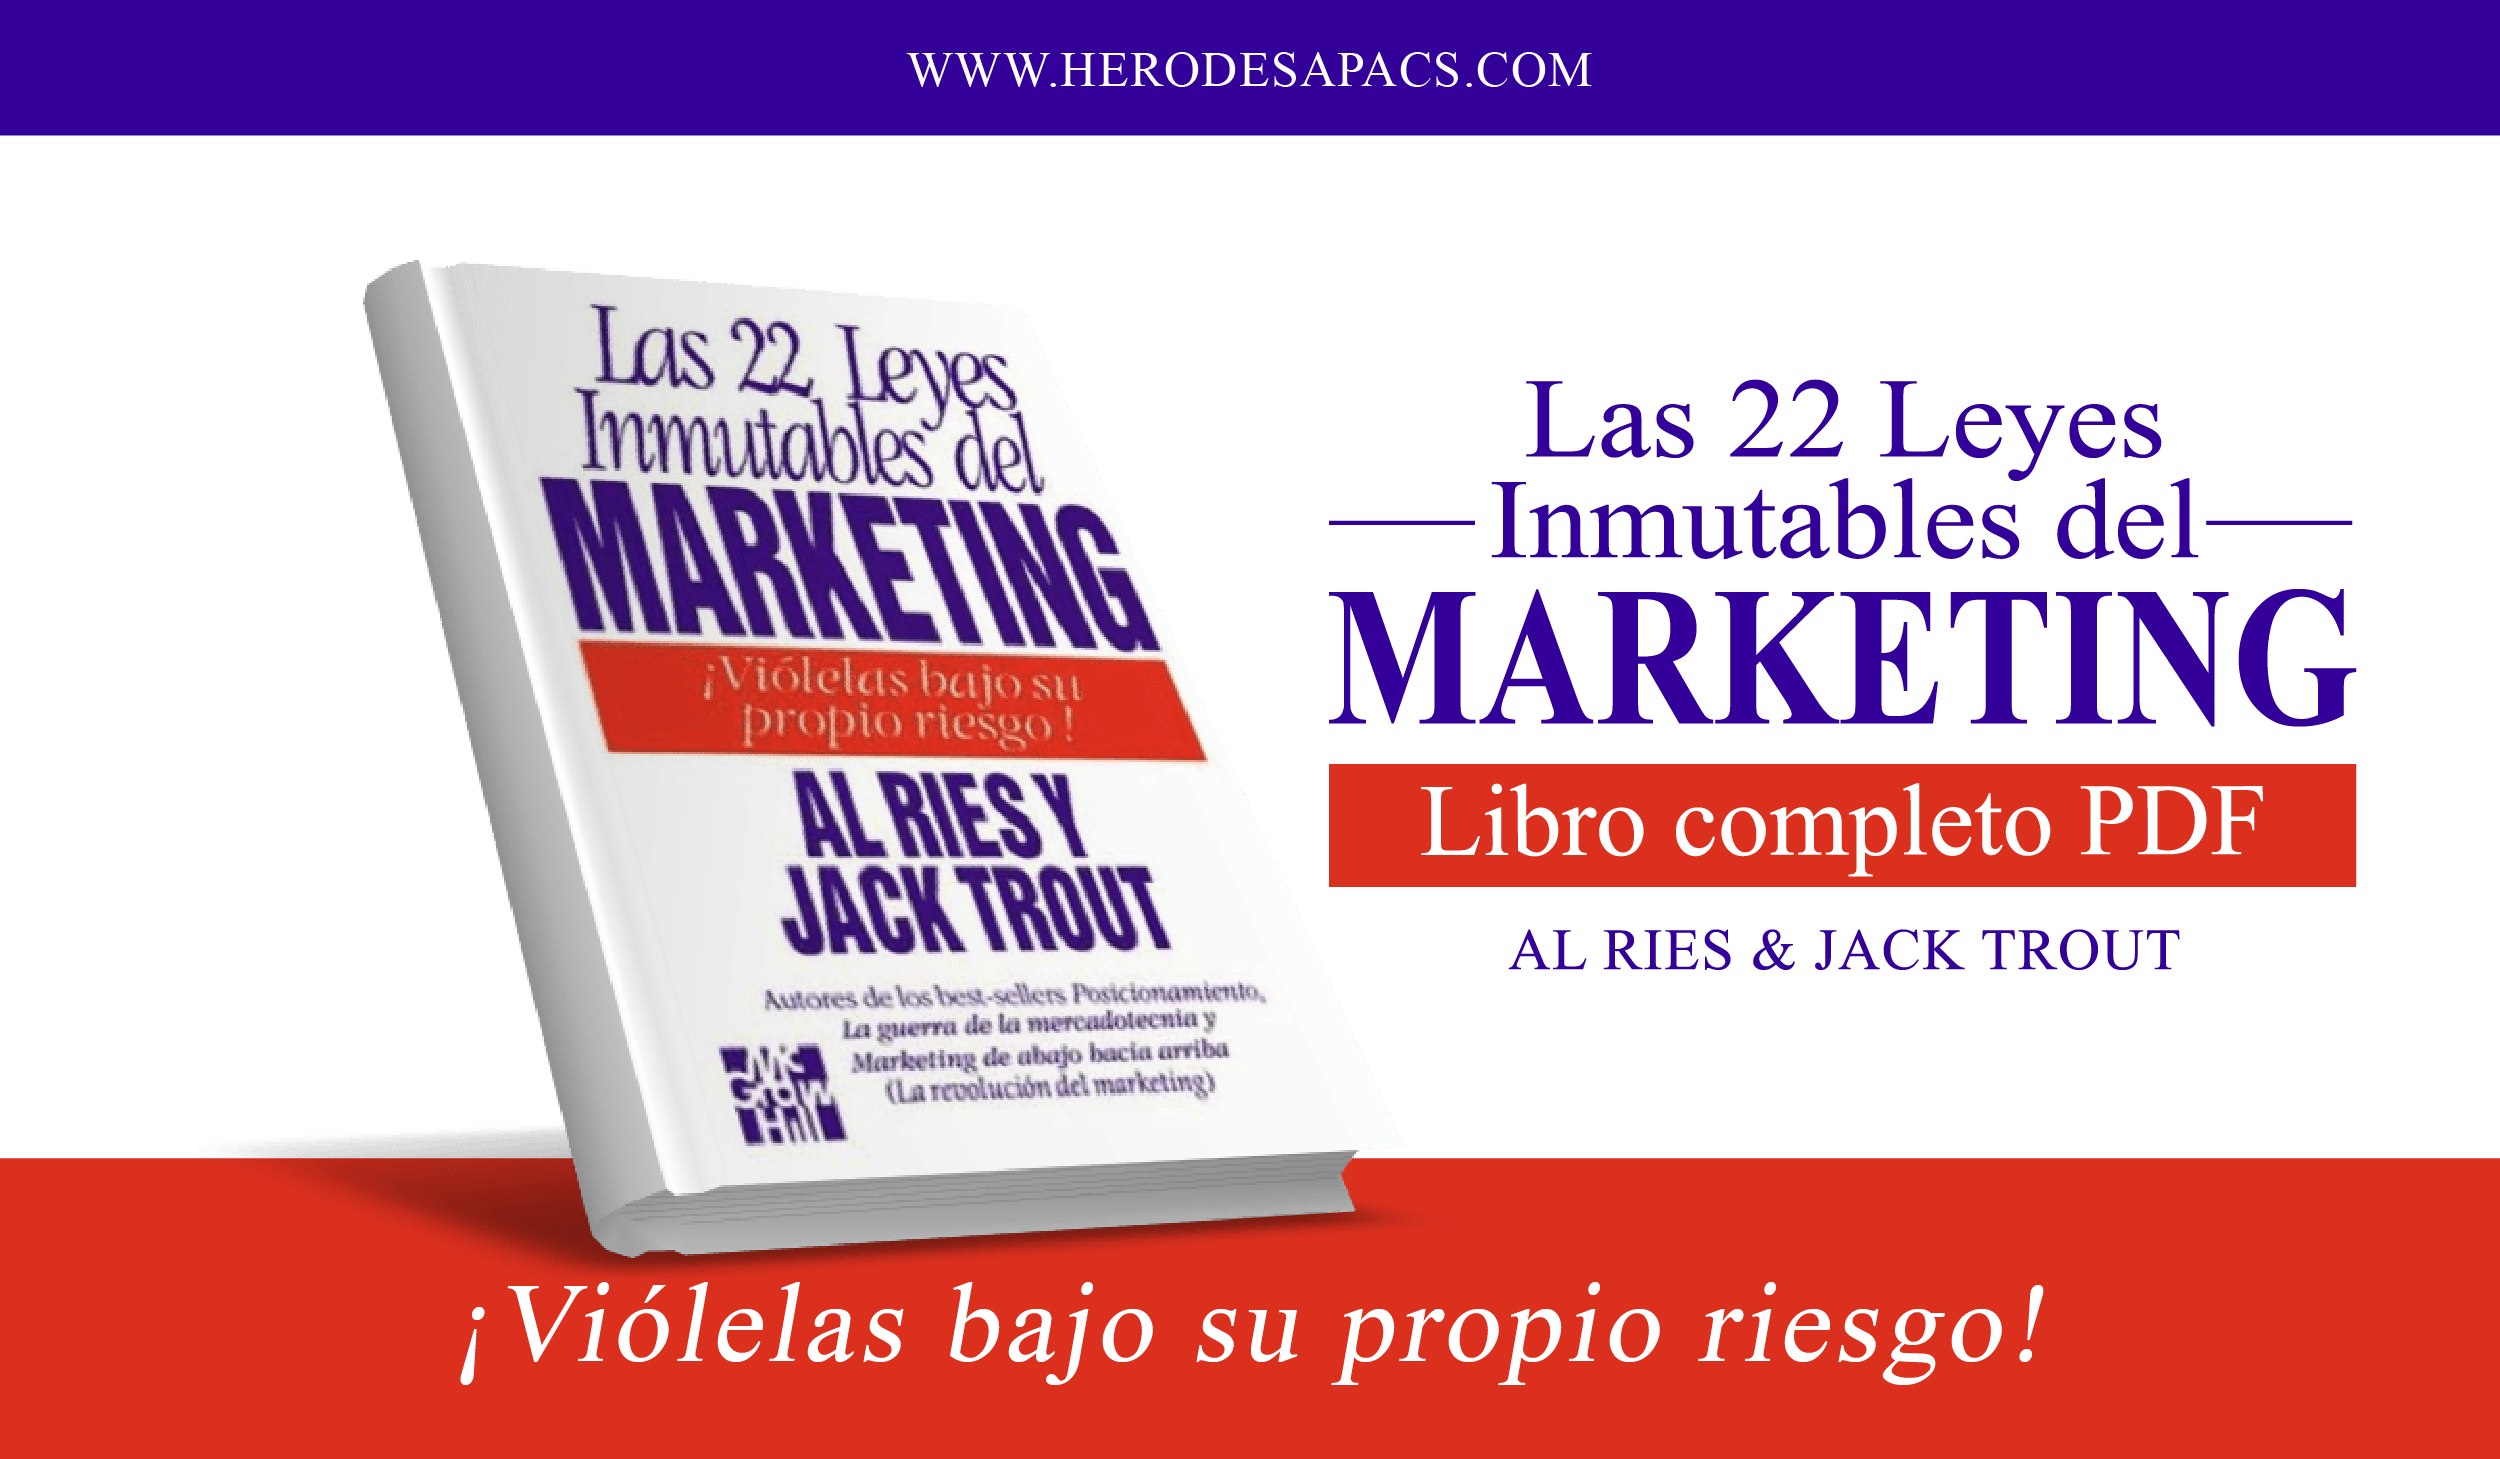 las 22 leyes inmutables del marketing - al ries - jack trout - leyes de marketing